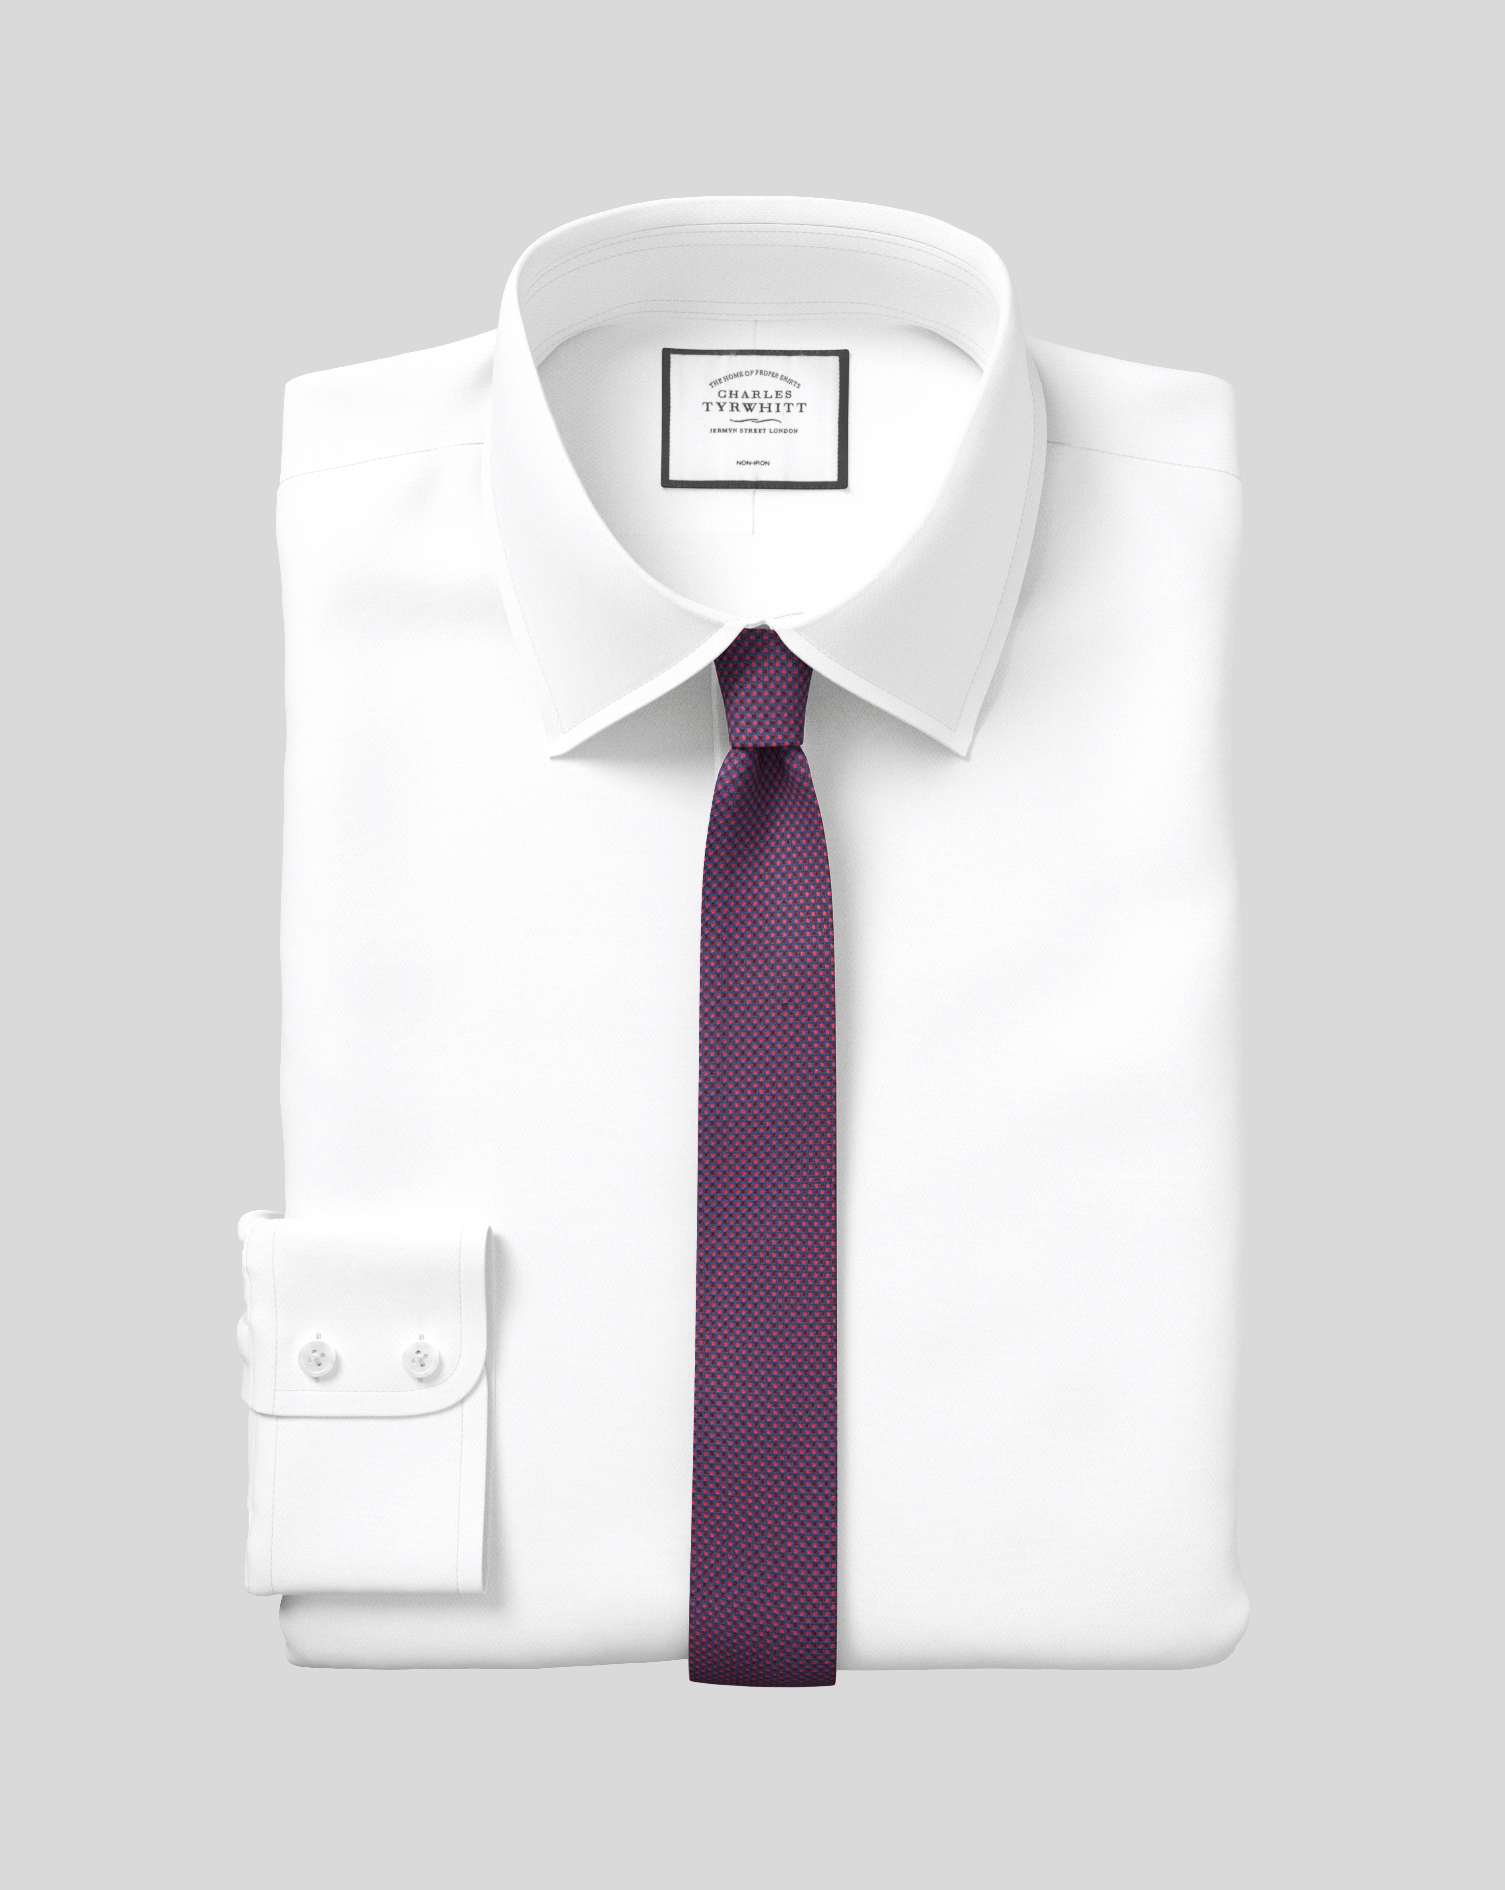 Extra Slim Fit Non-Iron White Royal Panama Cotton Formal Shirt Double Cuff Size 15.5/33 by Charles T